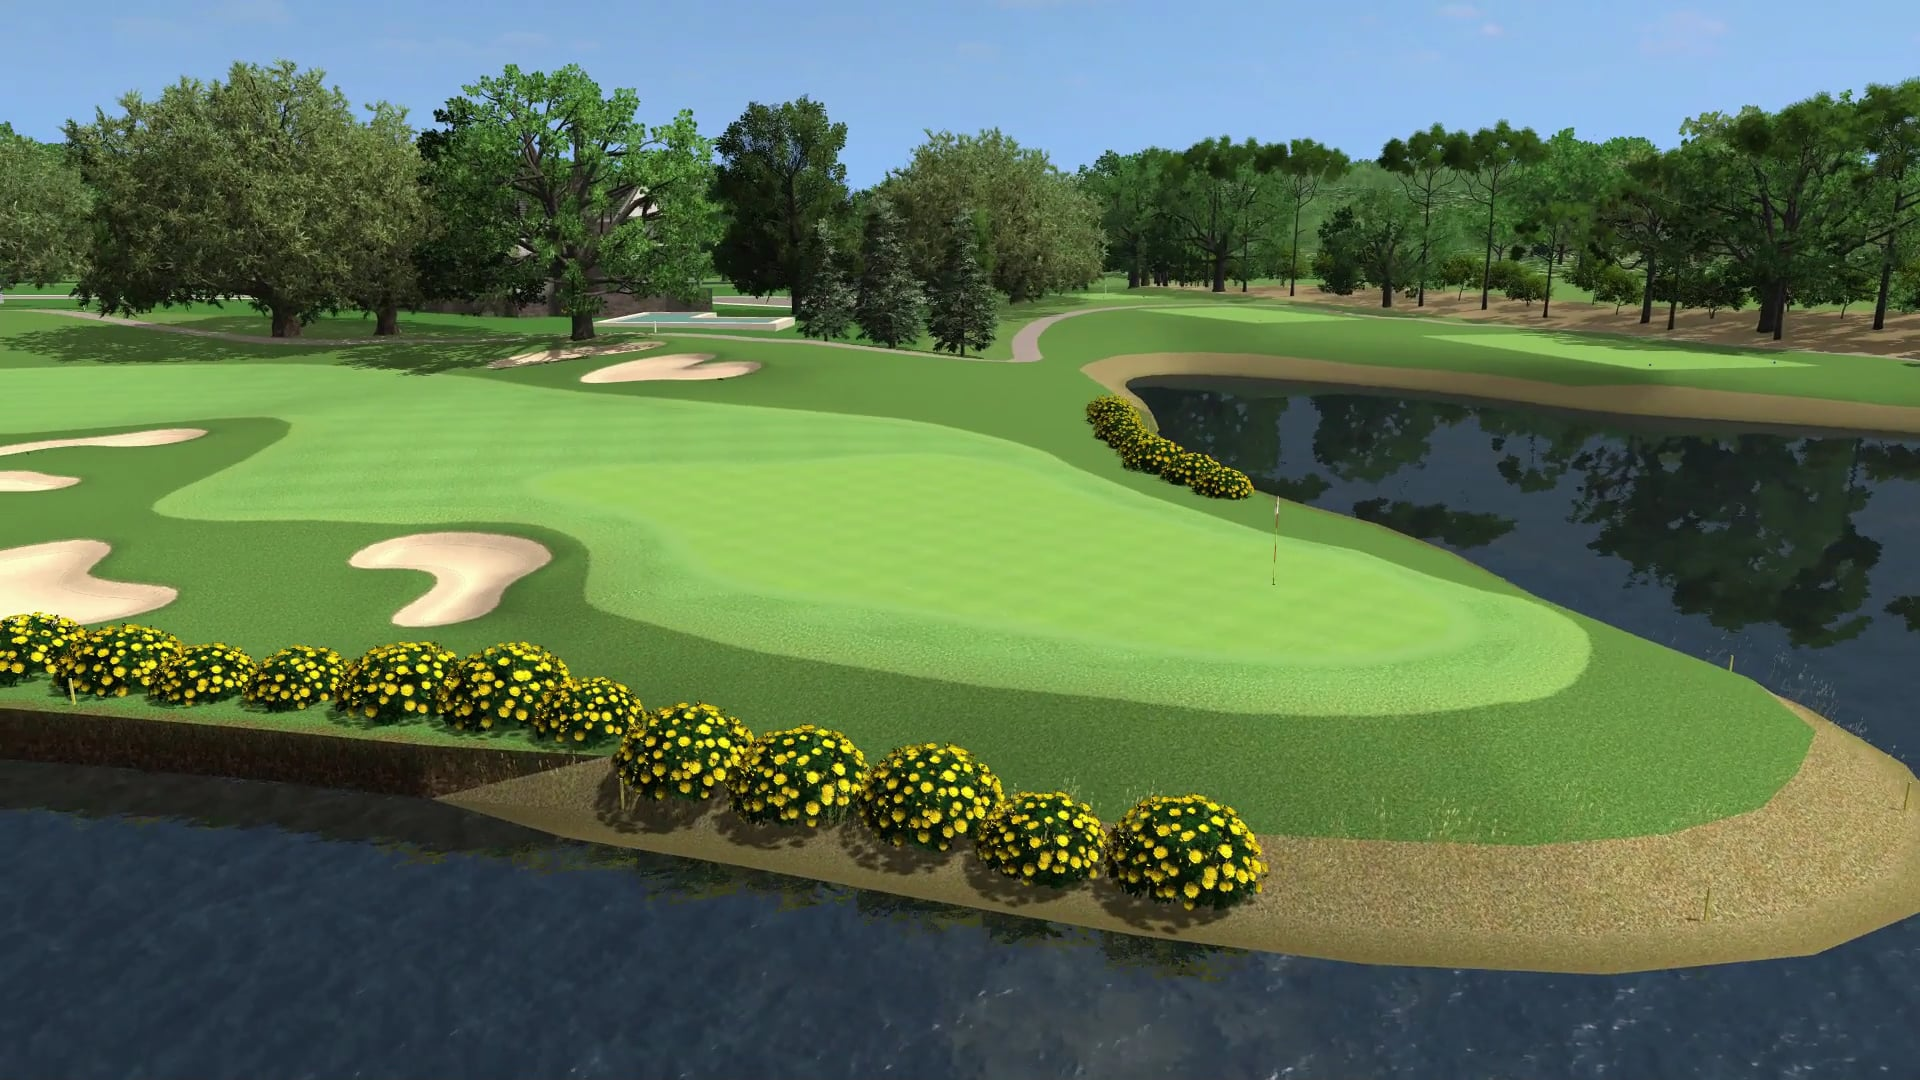 Week 2: 3-Hole Stroke Play - June 16th to June 21st